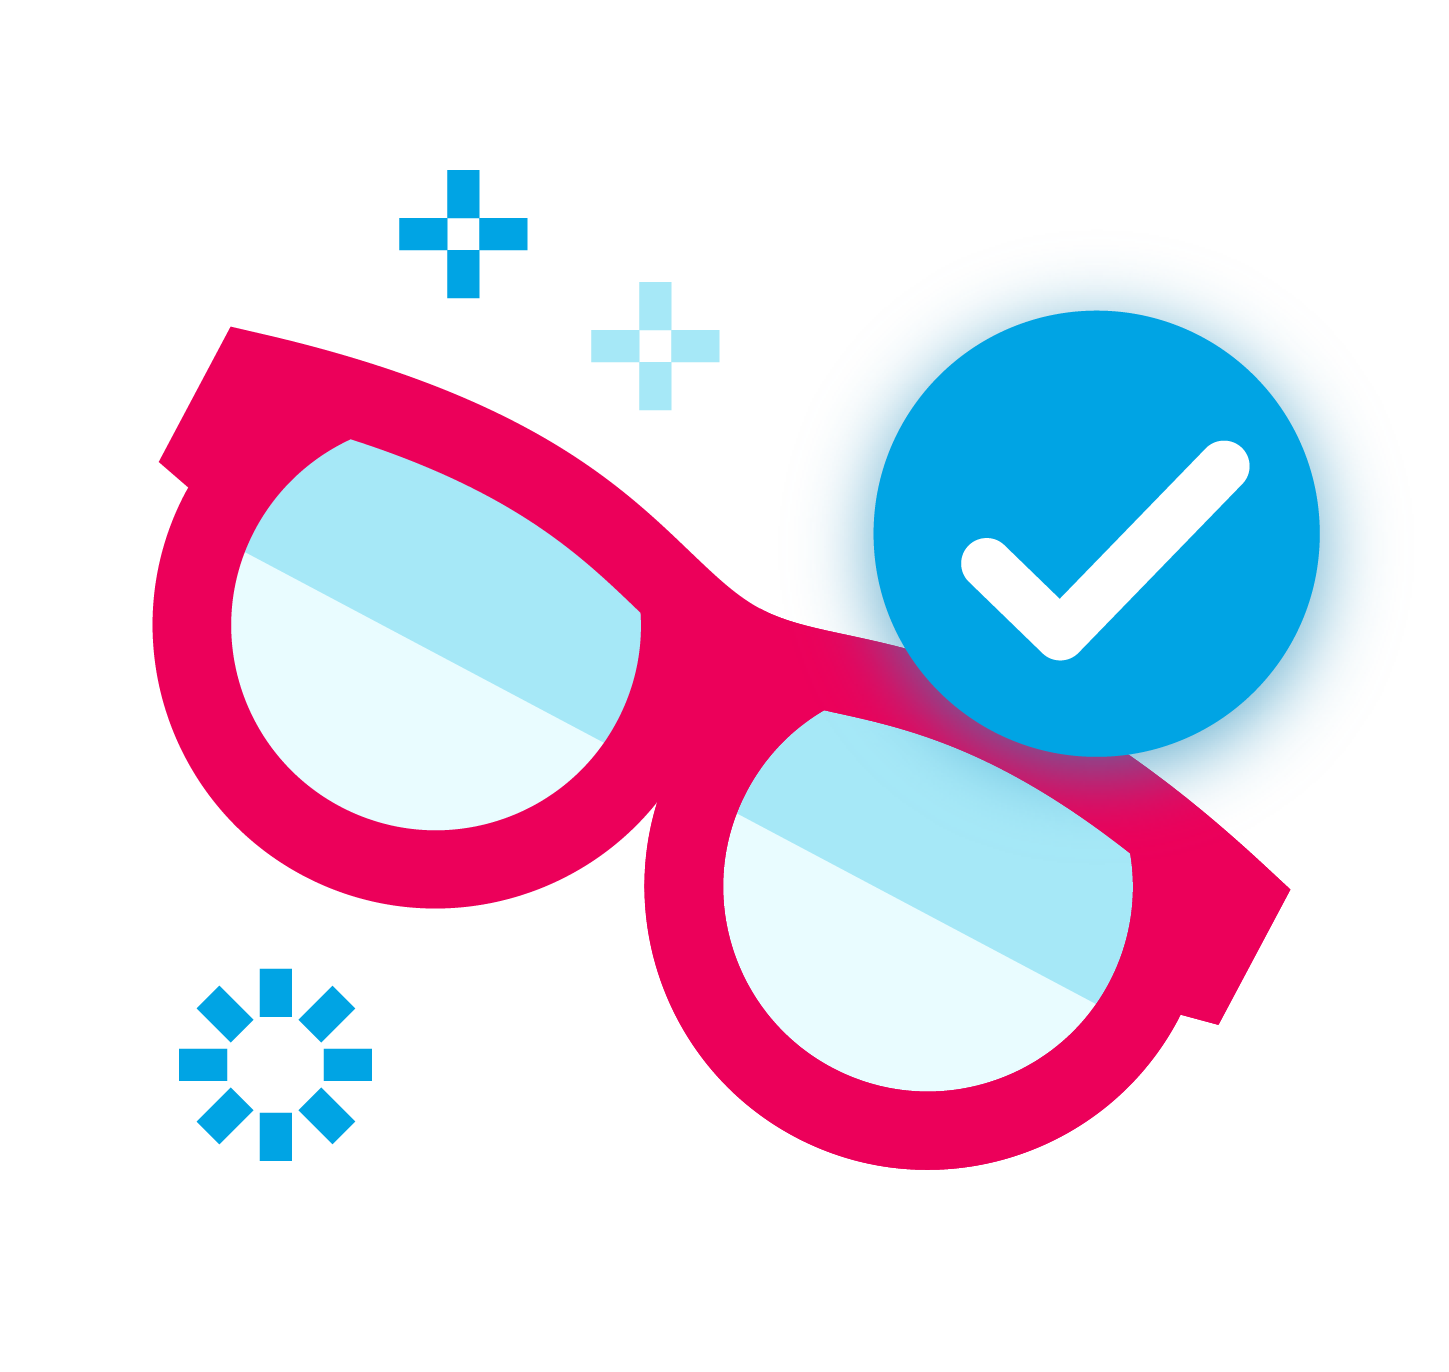 Stylized icon of a pair of glasses